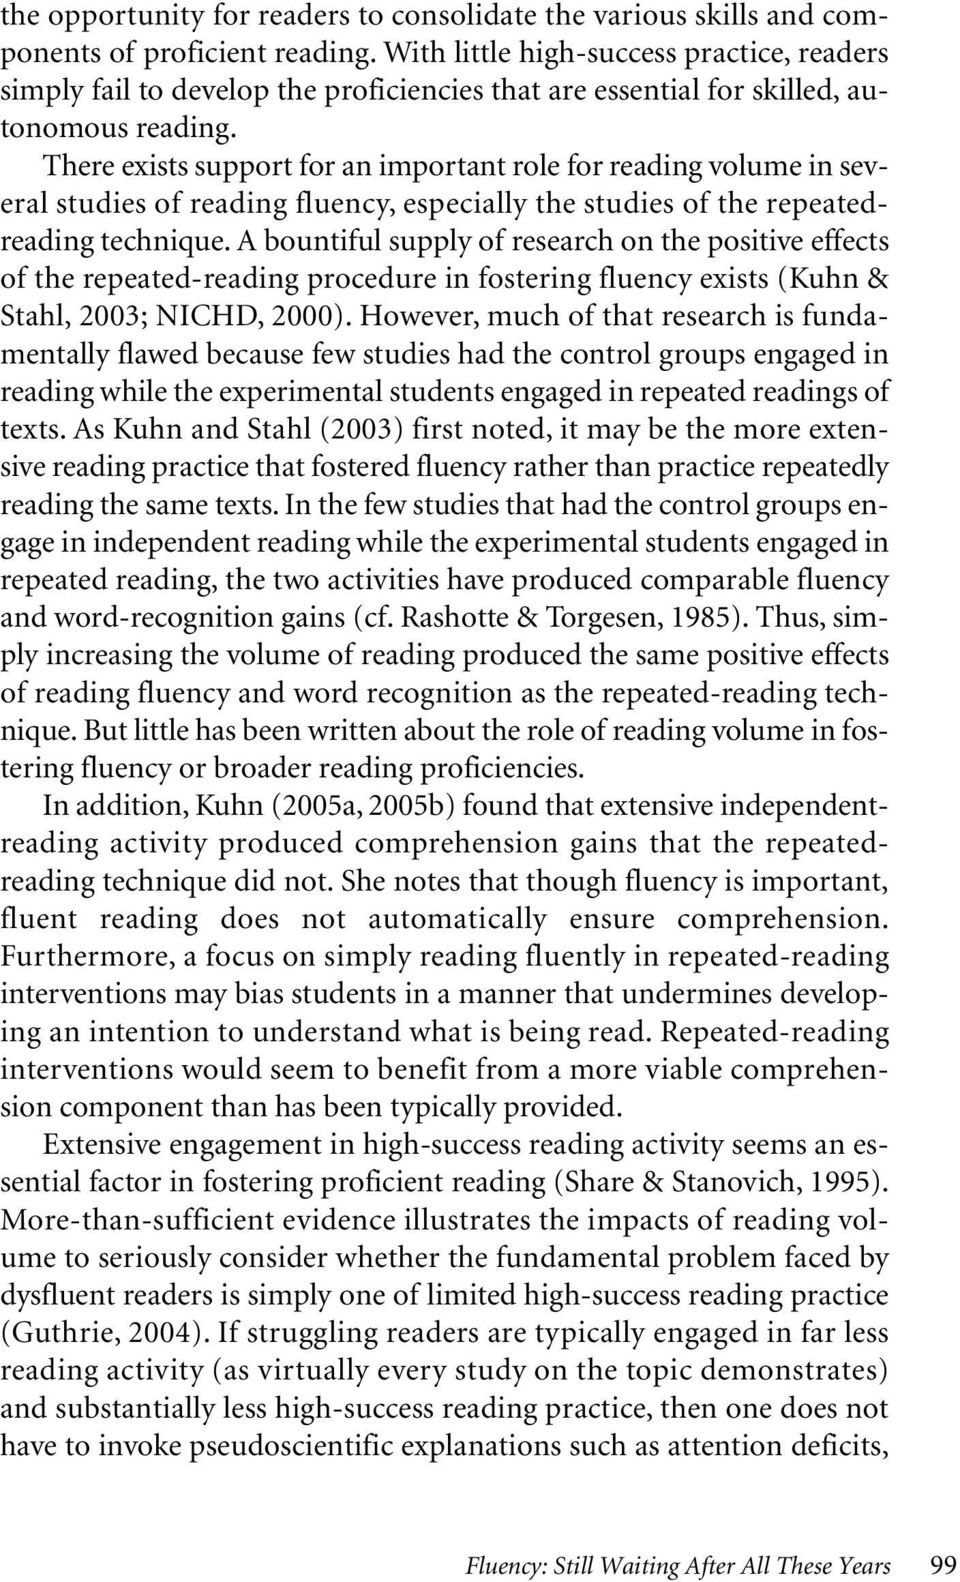 There exists support for an important role for reading volume in several studies of reading fluency, especially the studies of the repeatedreading technique.